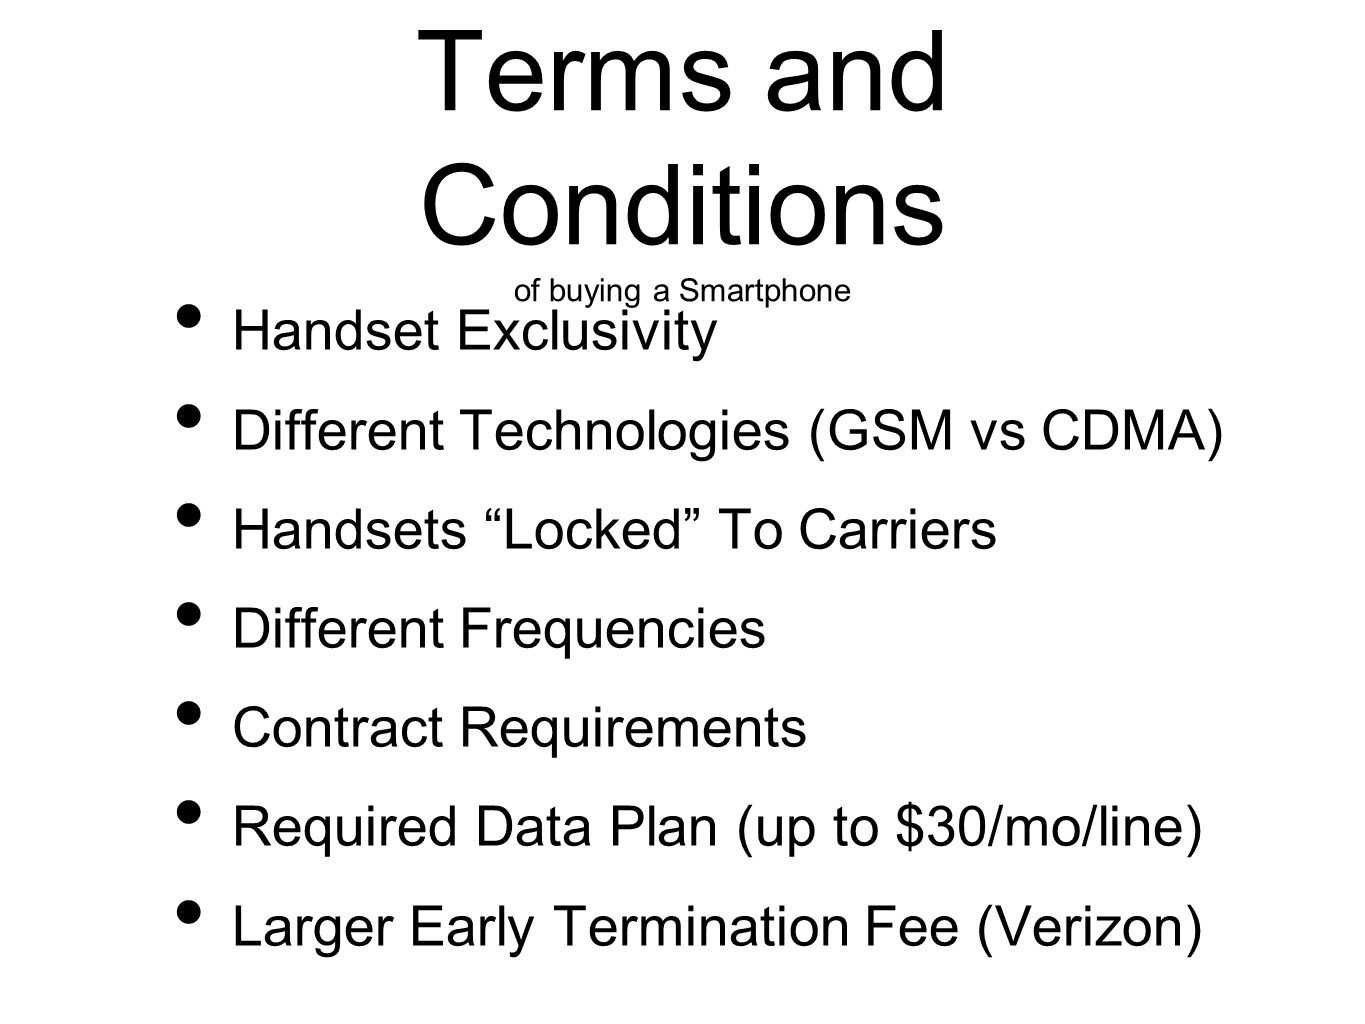 Terms and Conditions of buying a Smartphone